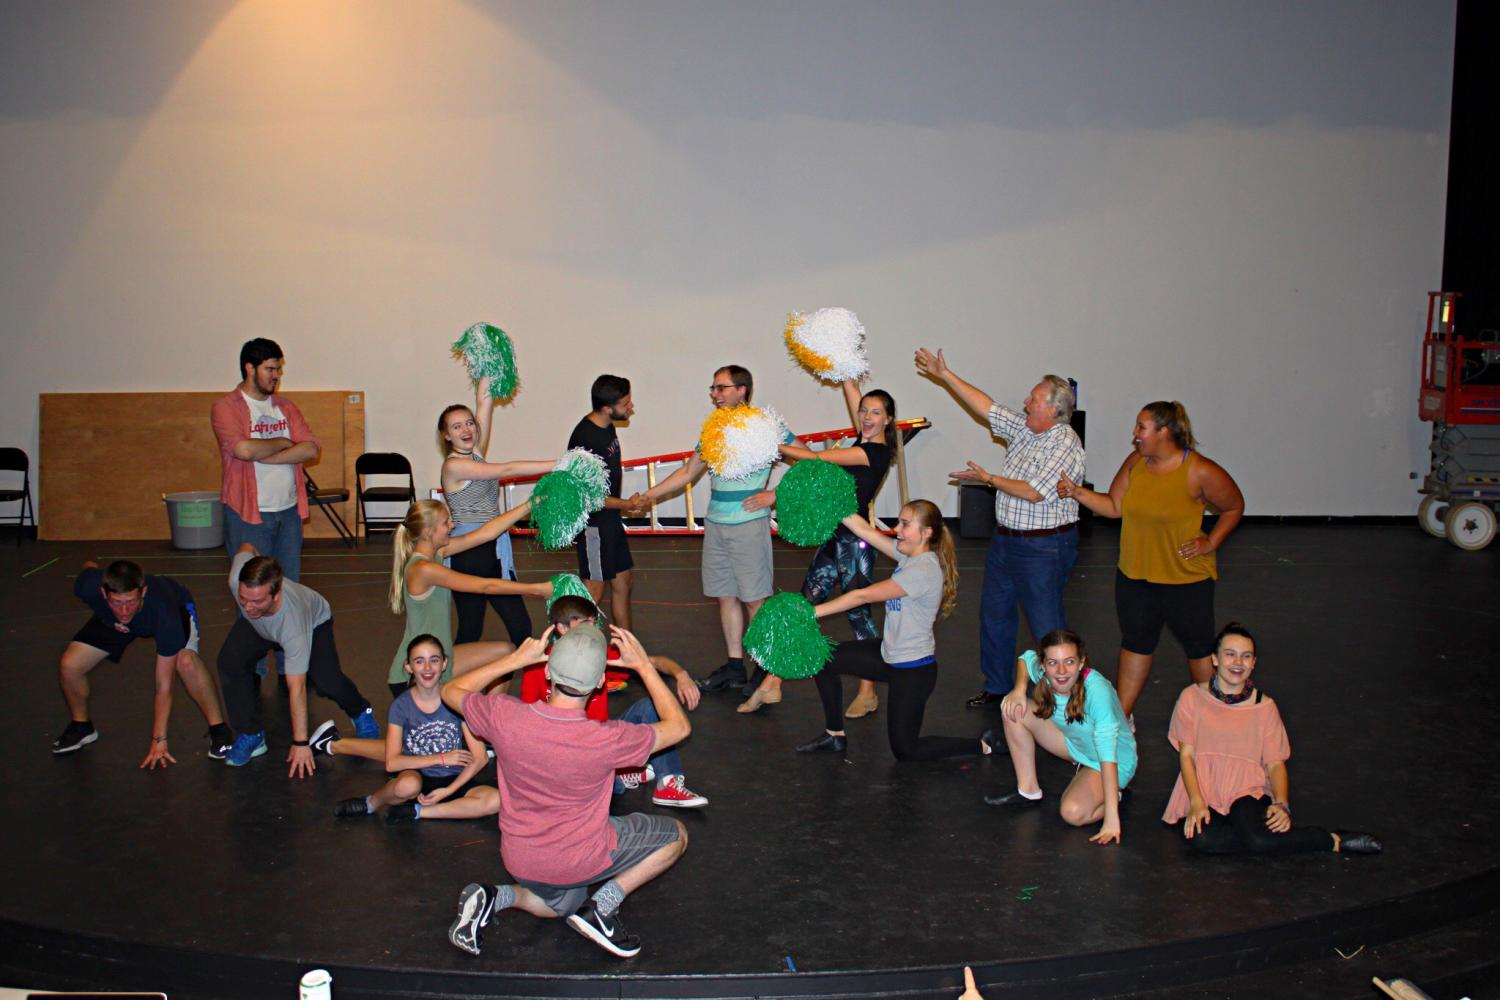 The cast in their final pose of one of the scenes (Image Source: Kennedy Johnson)